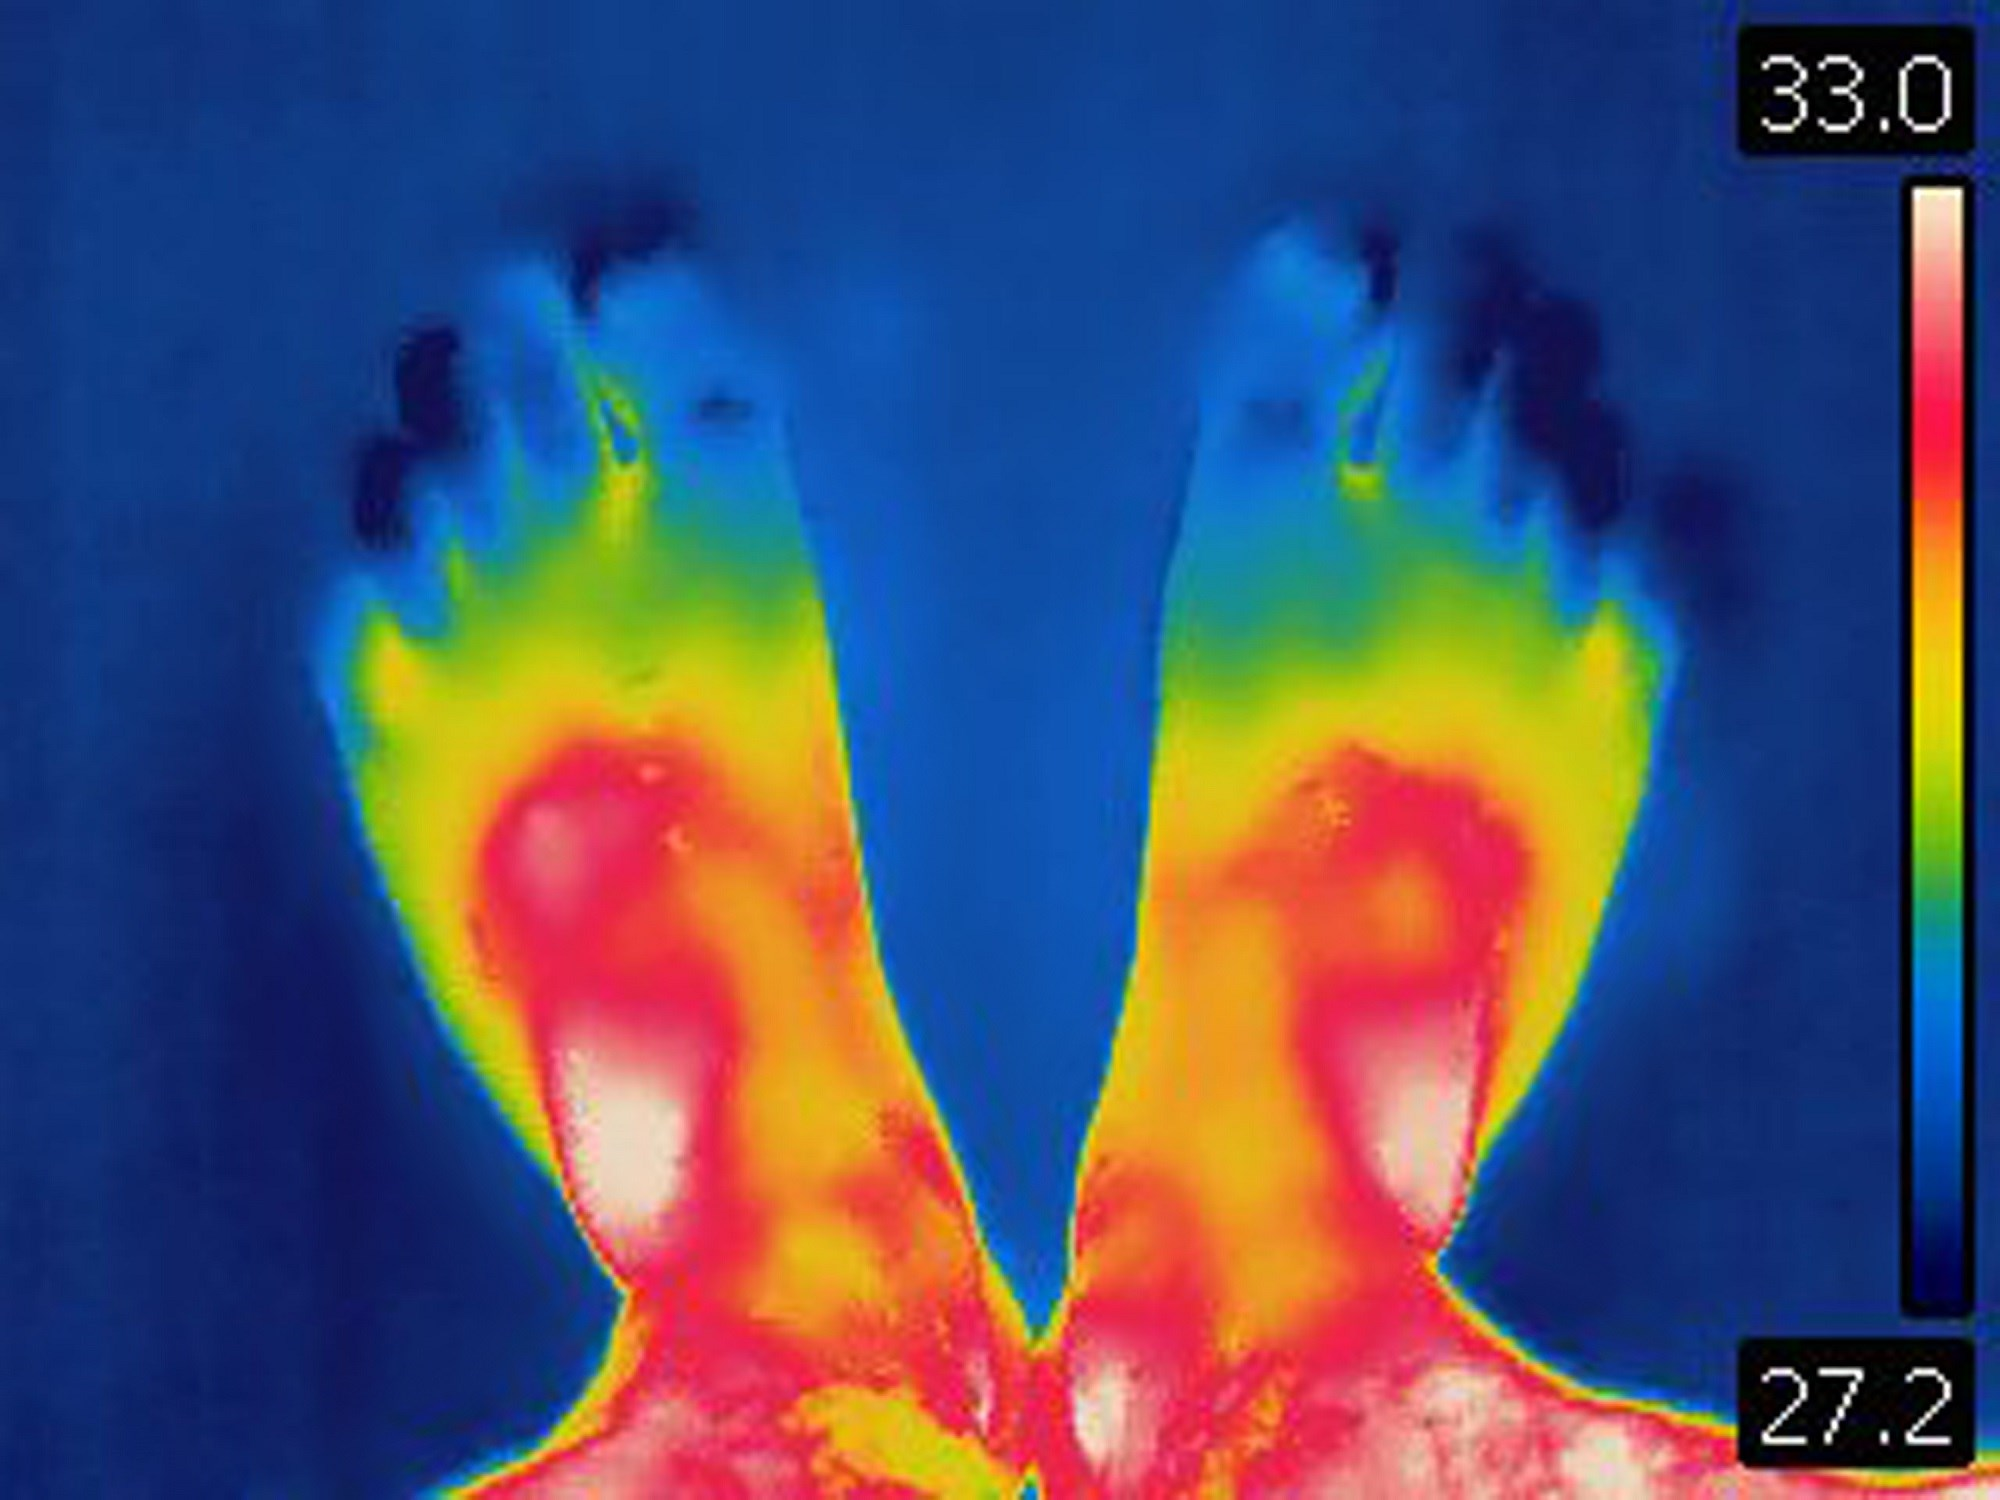 Infrared Thermal Imaging Shows Inflammation in Chronic Nonbacterial Osteomyelitis